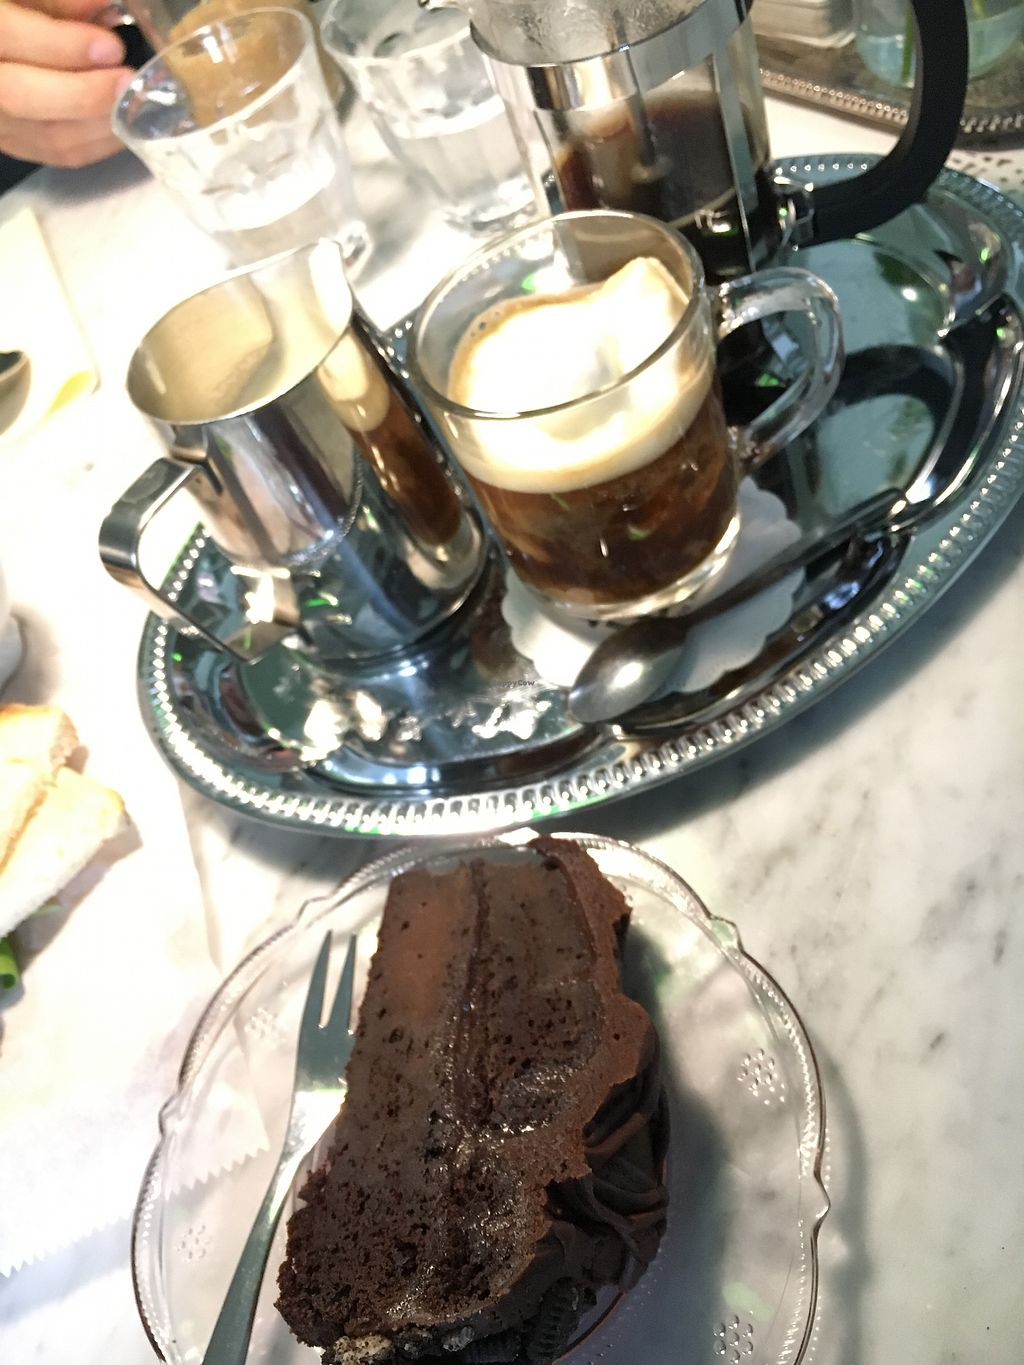 "Photo of Julia & Julia  by <a href=""/members/profile/turtleveg"">turtleveg</a> <br/>vegan chocolate cake with French press coffee and steamed soy milk  <br/> August 8, 2017  - <a href='/contact/abuse/image/97880/290431'>Report</a>"